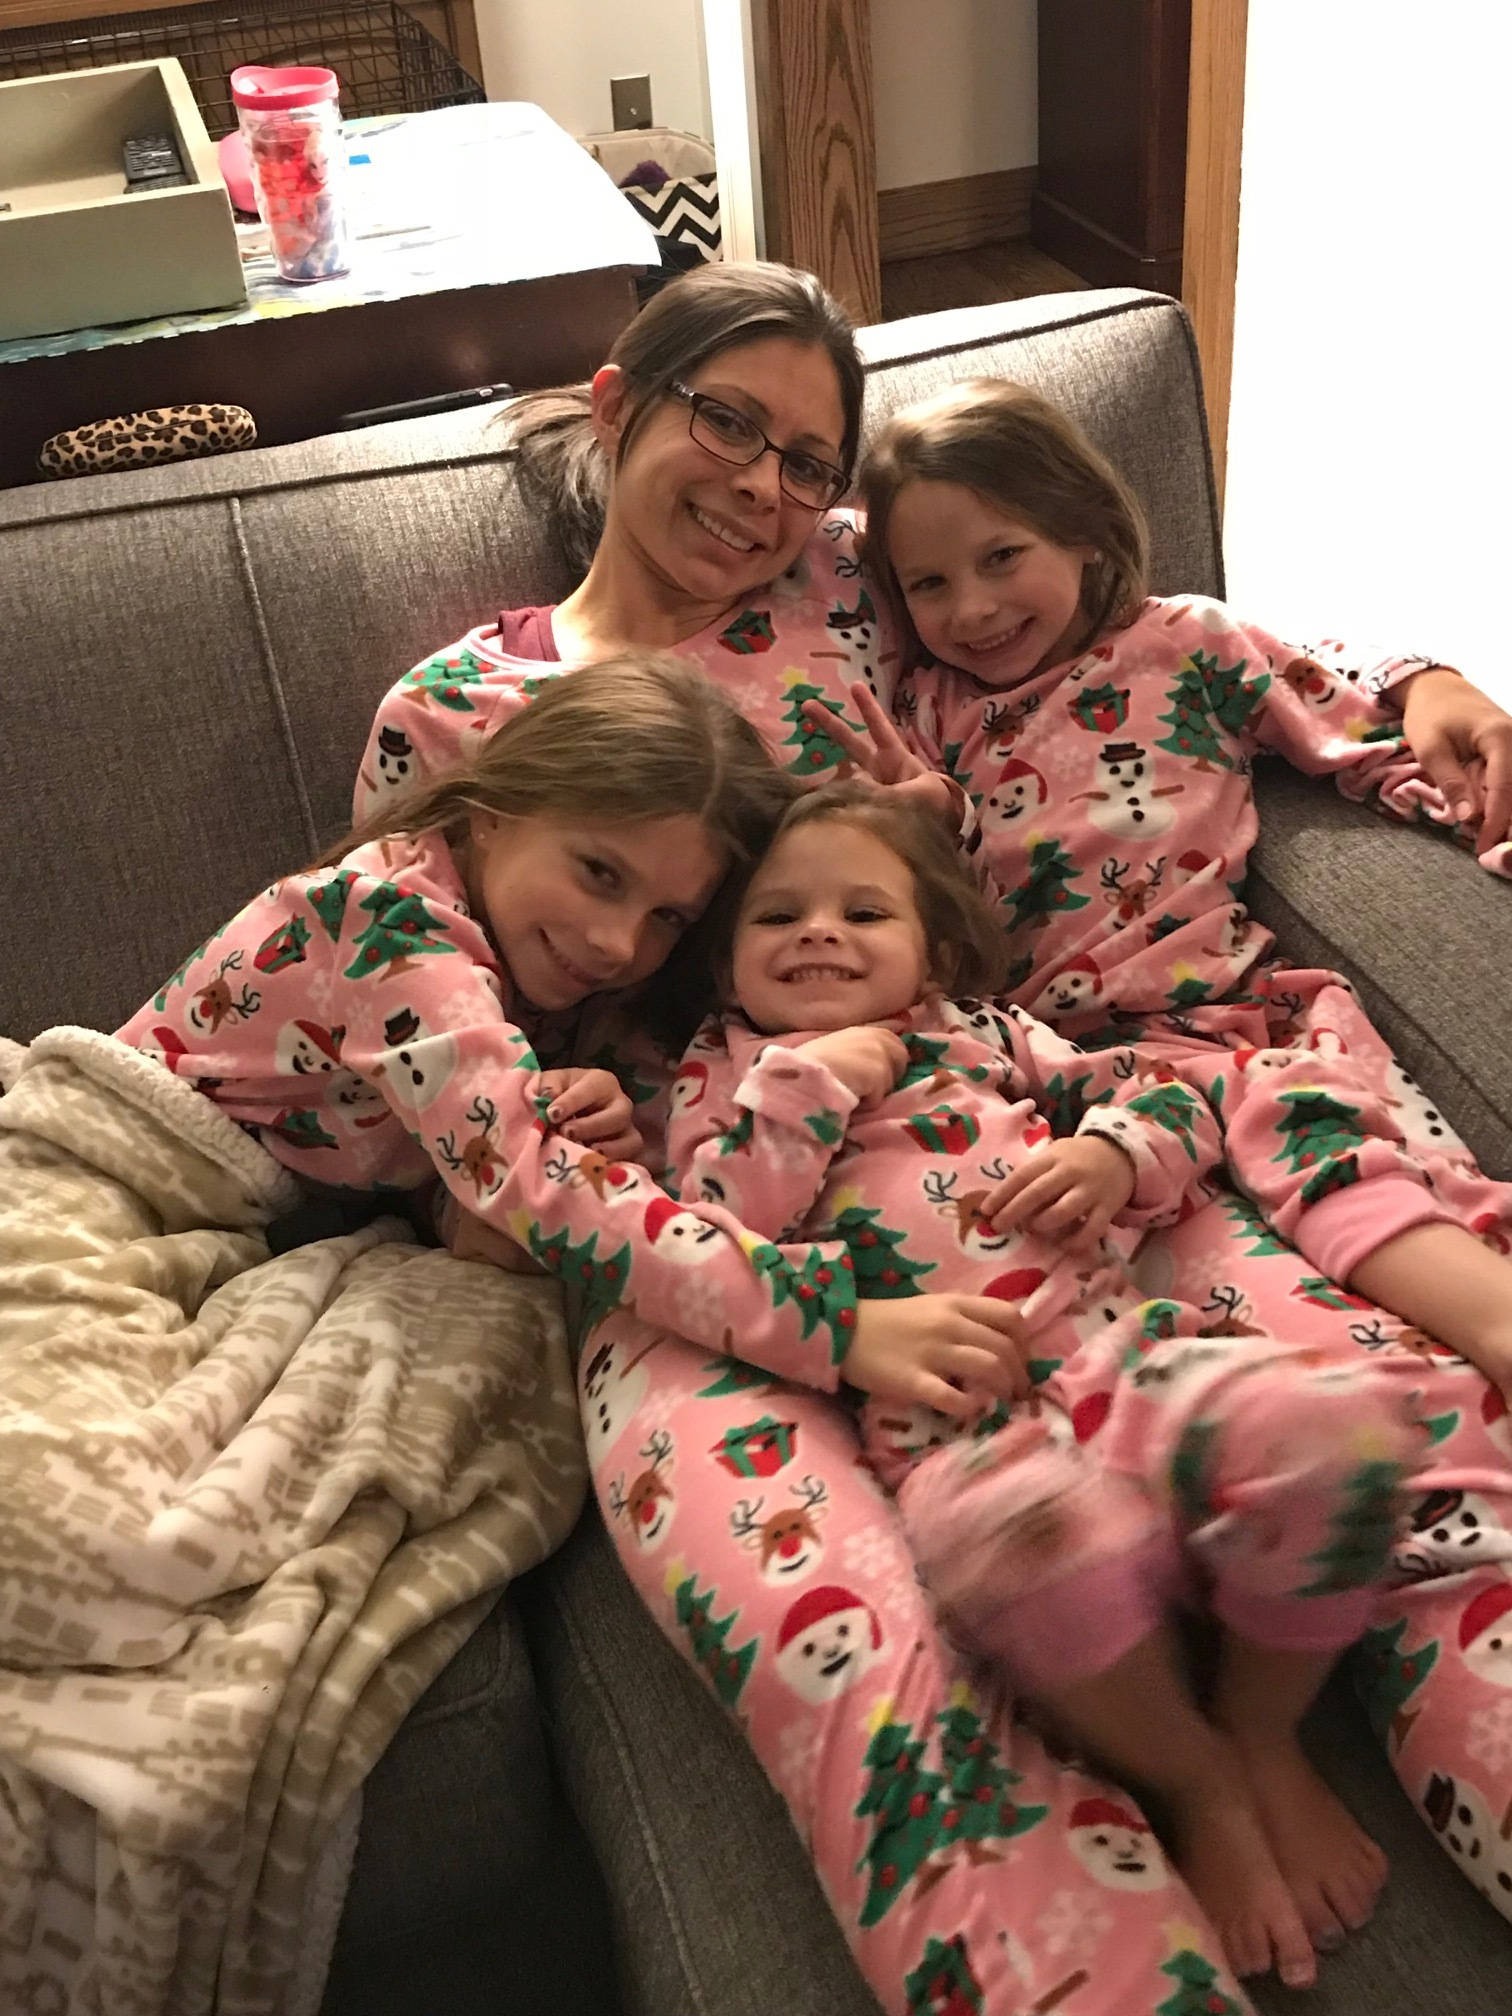 Popcorn, family, pets and cuddles - the best way to spend the weekend